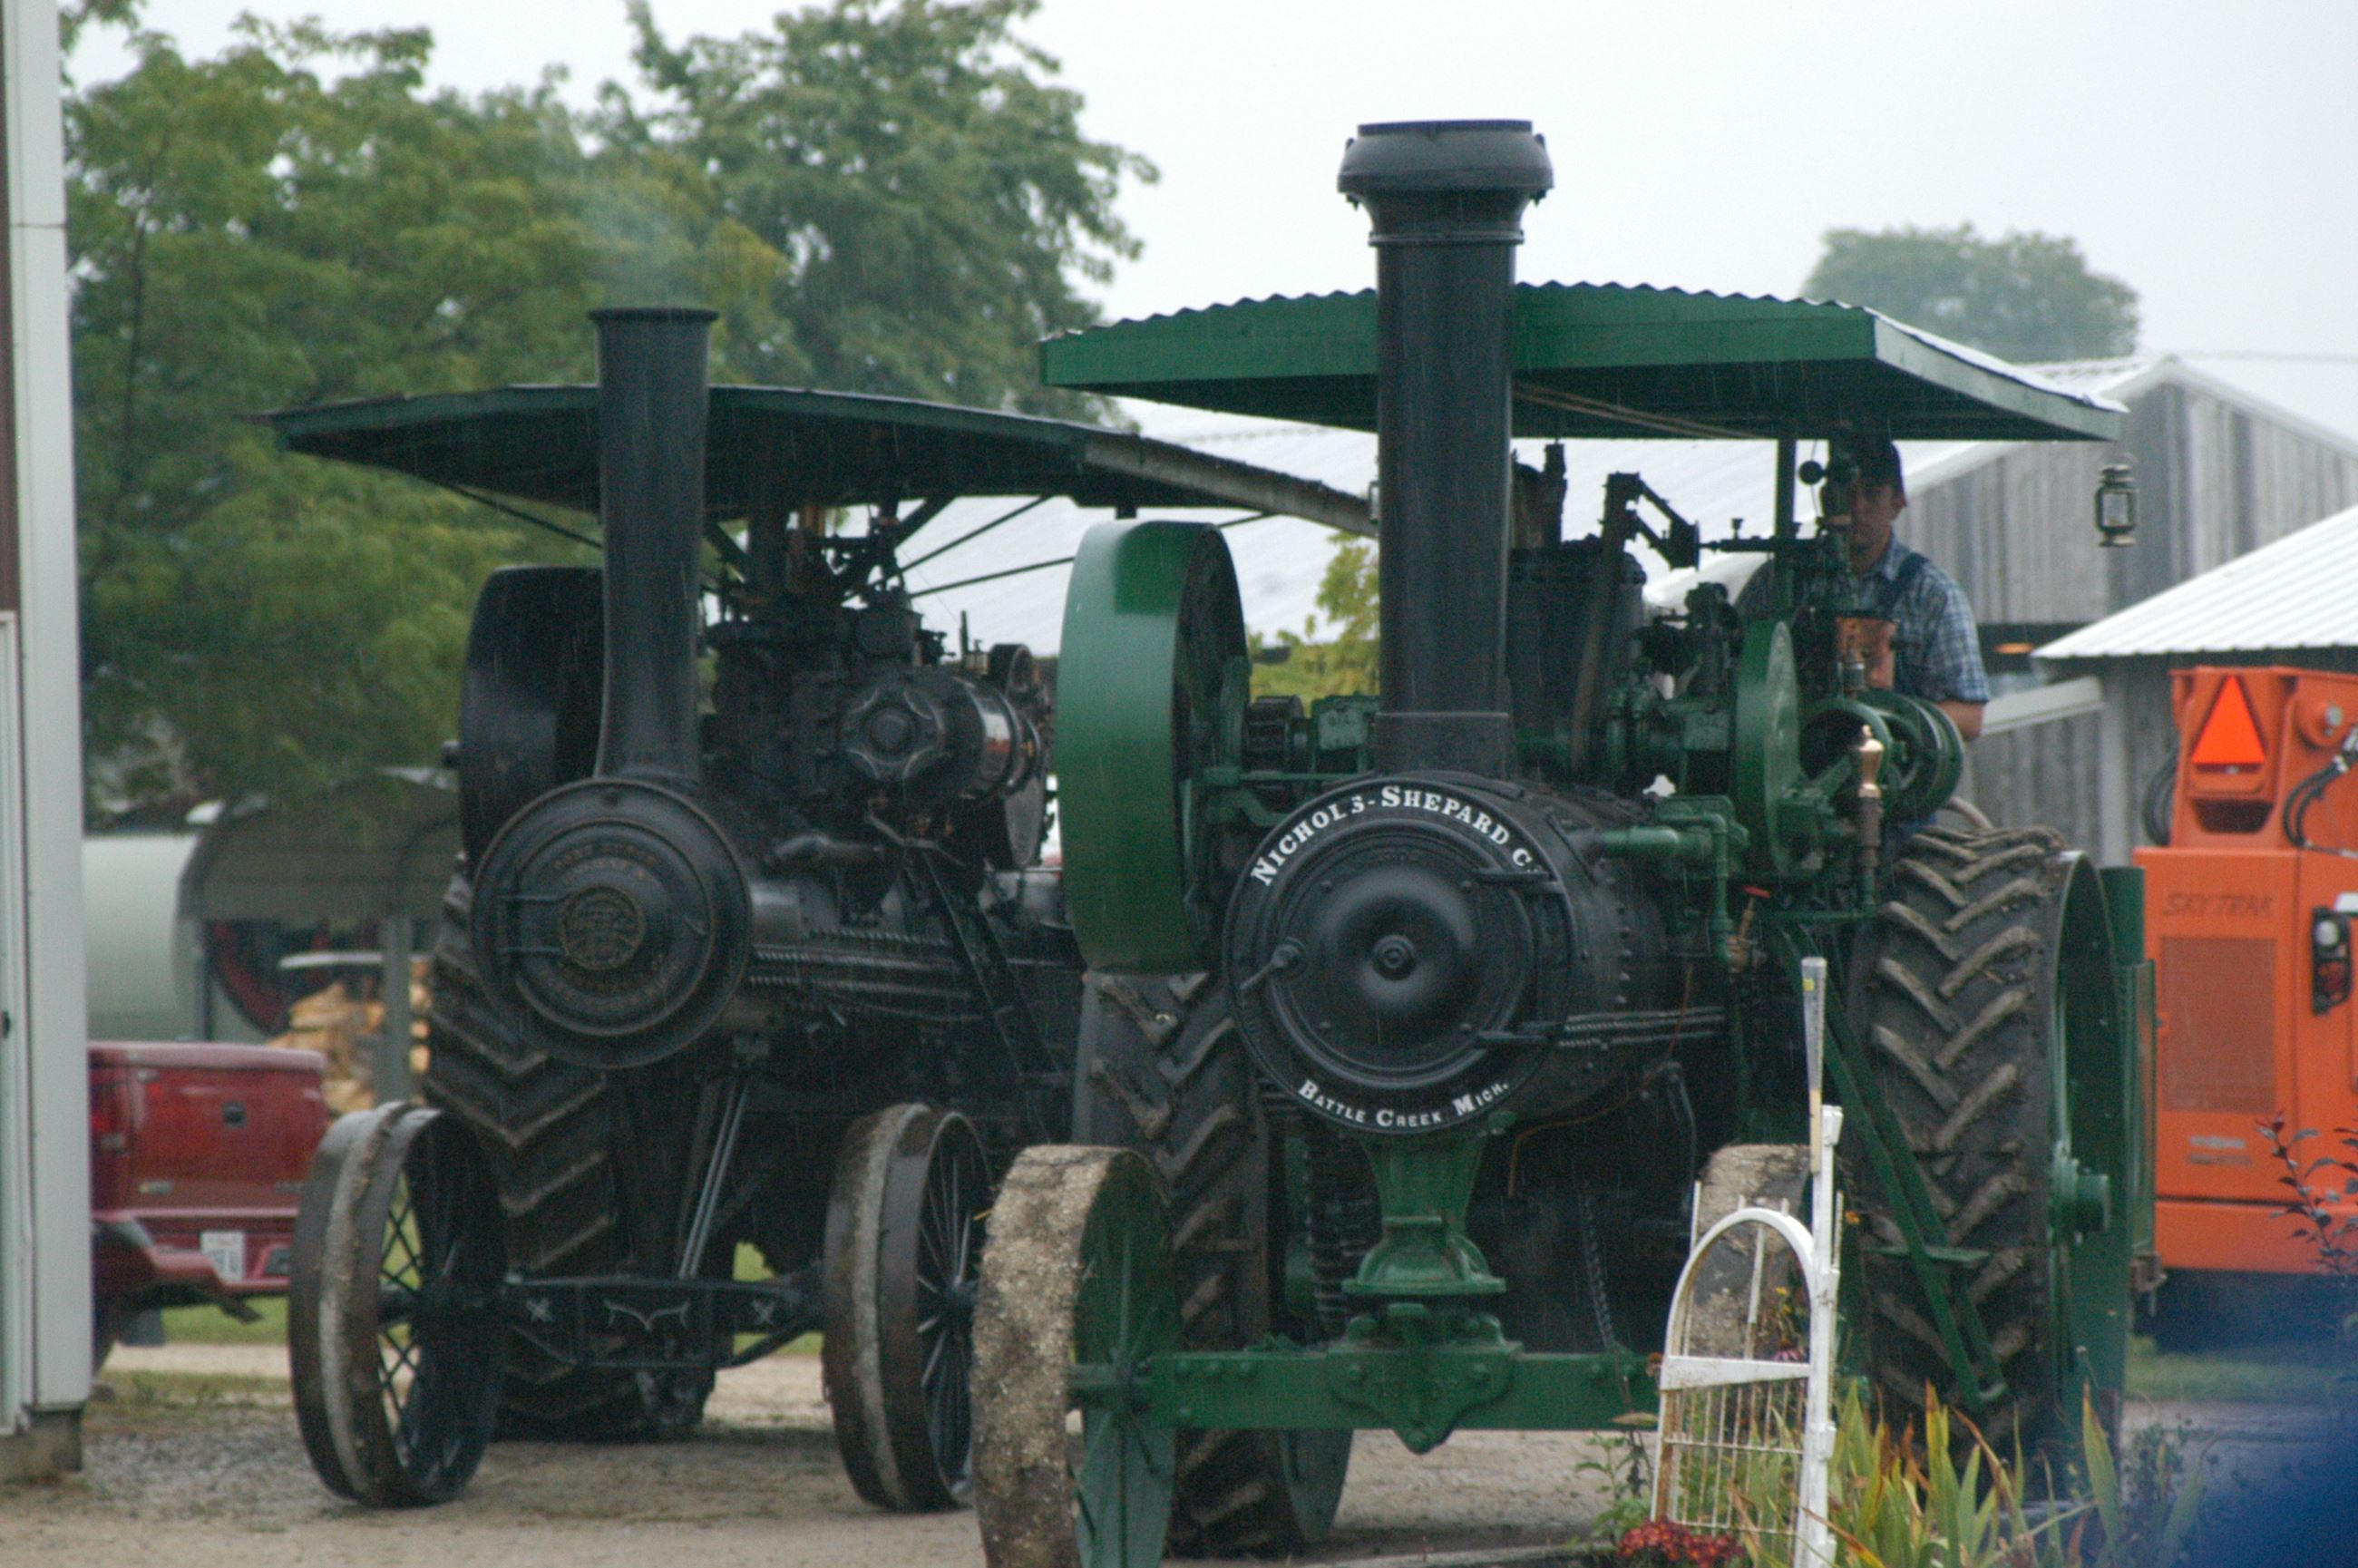 Two Steam Powered Tractors